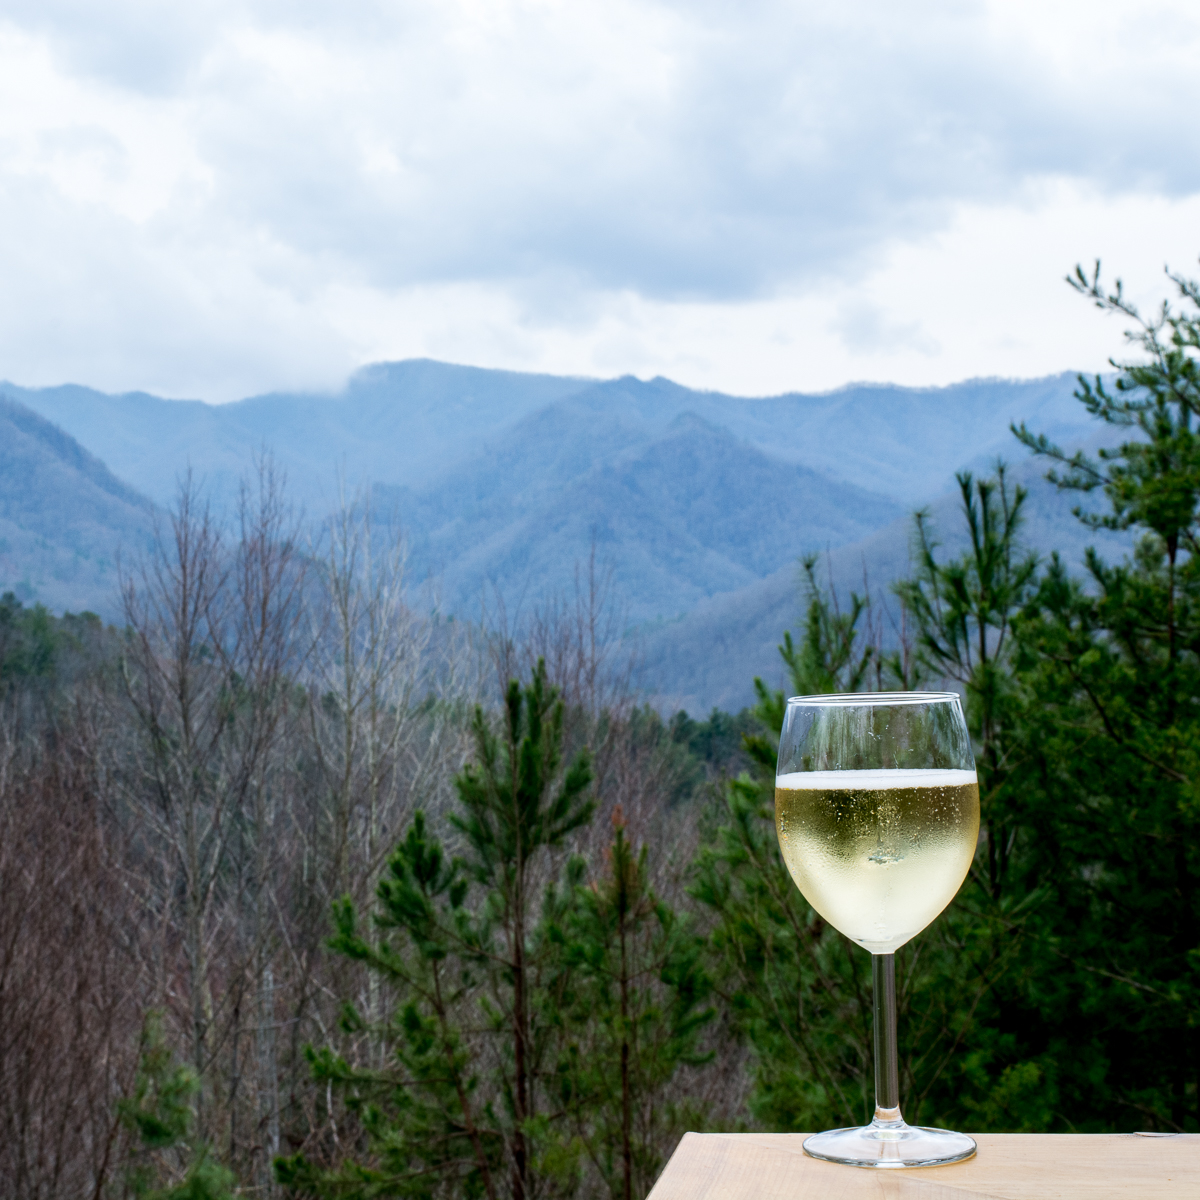 Wine time in the mountains.